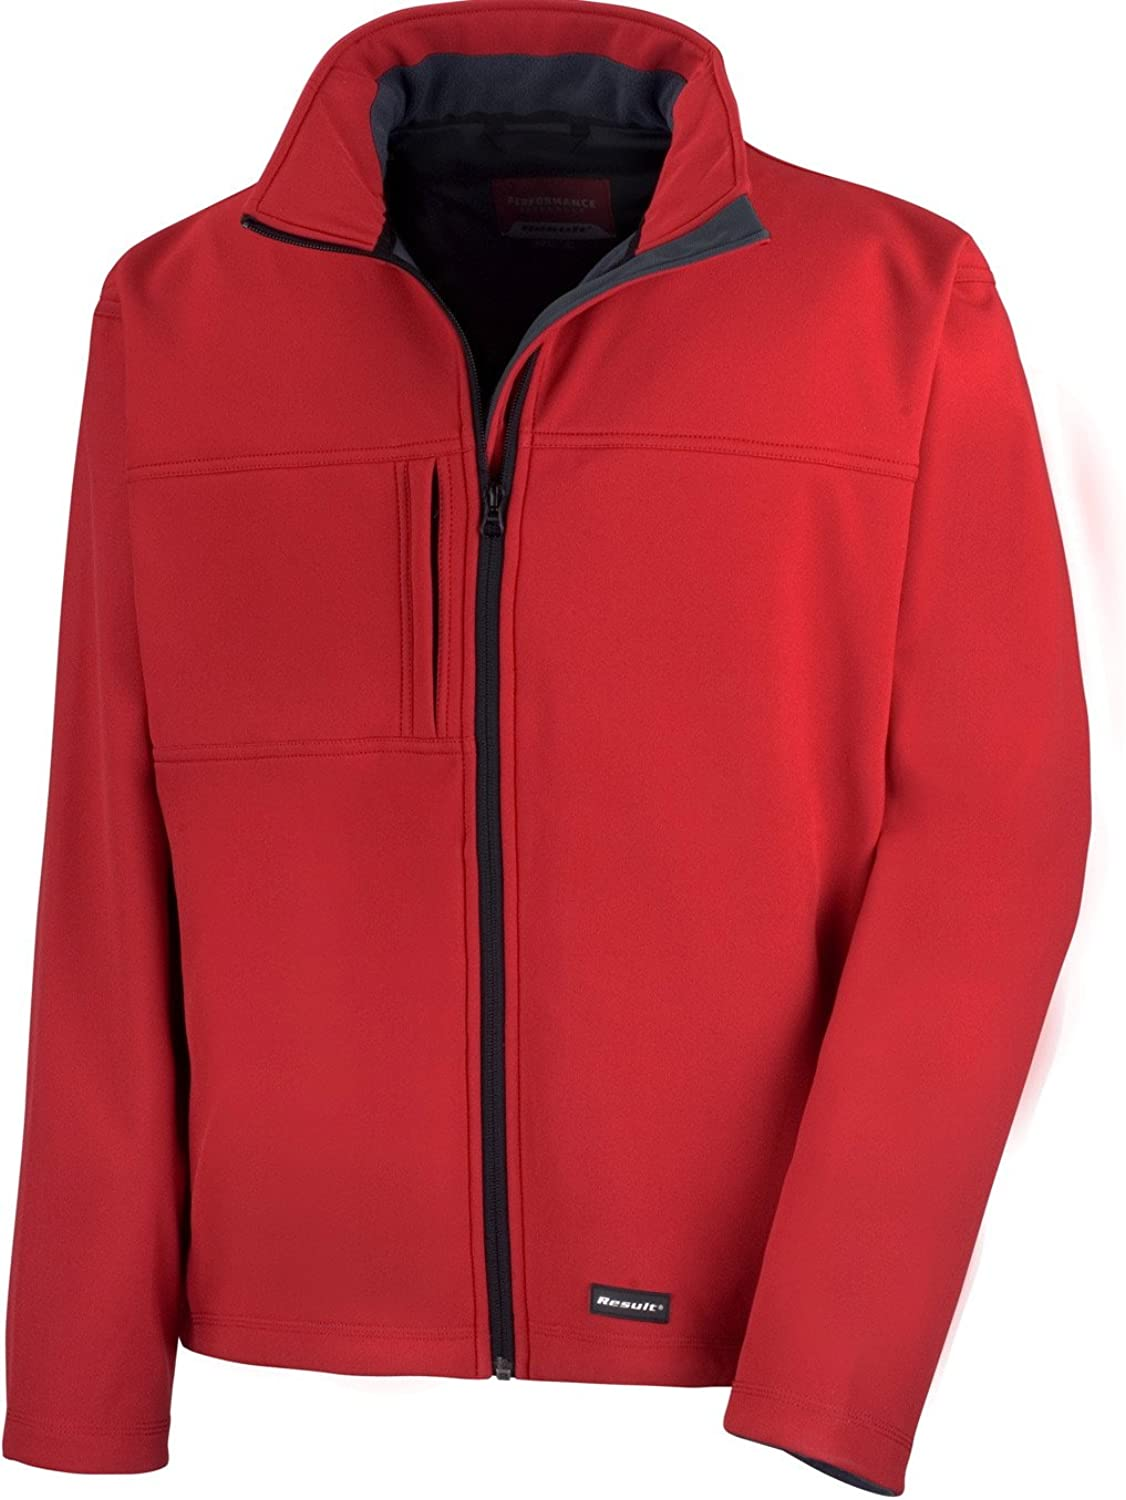 (Medium, Red) - Result R121a Classic Soft Shell Jacket